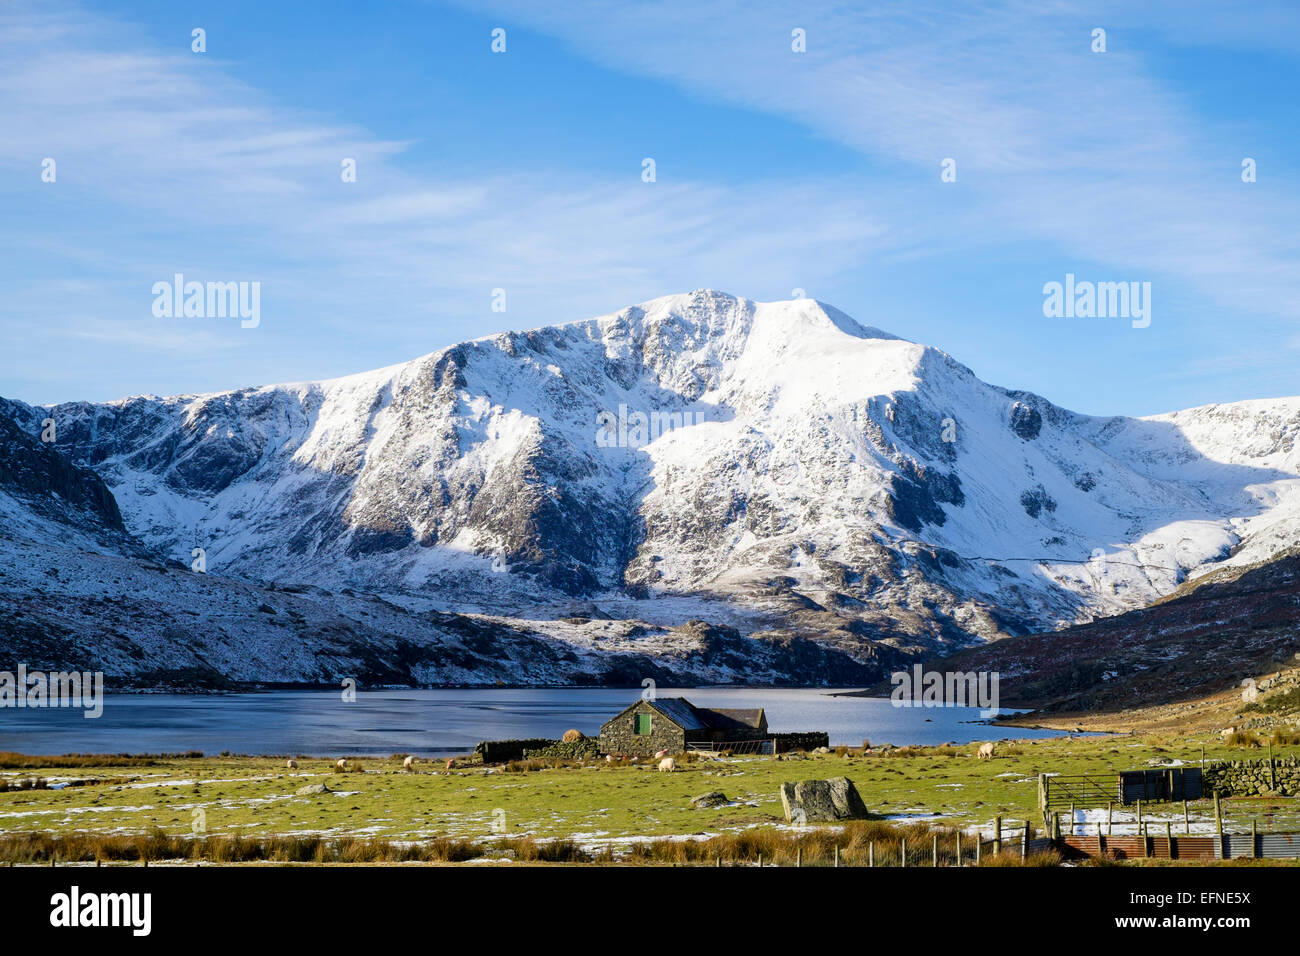 View along Ogwen Valley and lake to Y Garn mountain with snow in winter in mountains of Snowdonia National Park - Stock Image